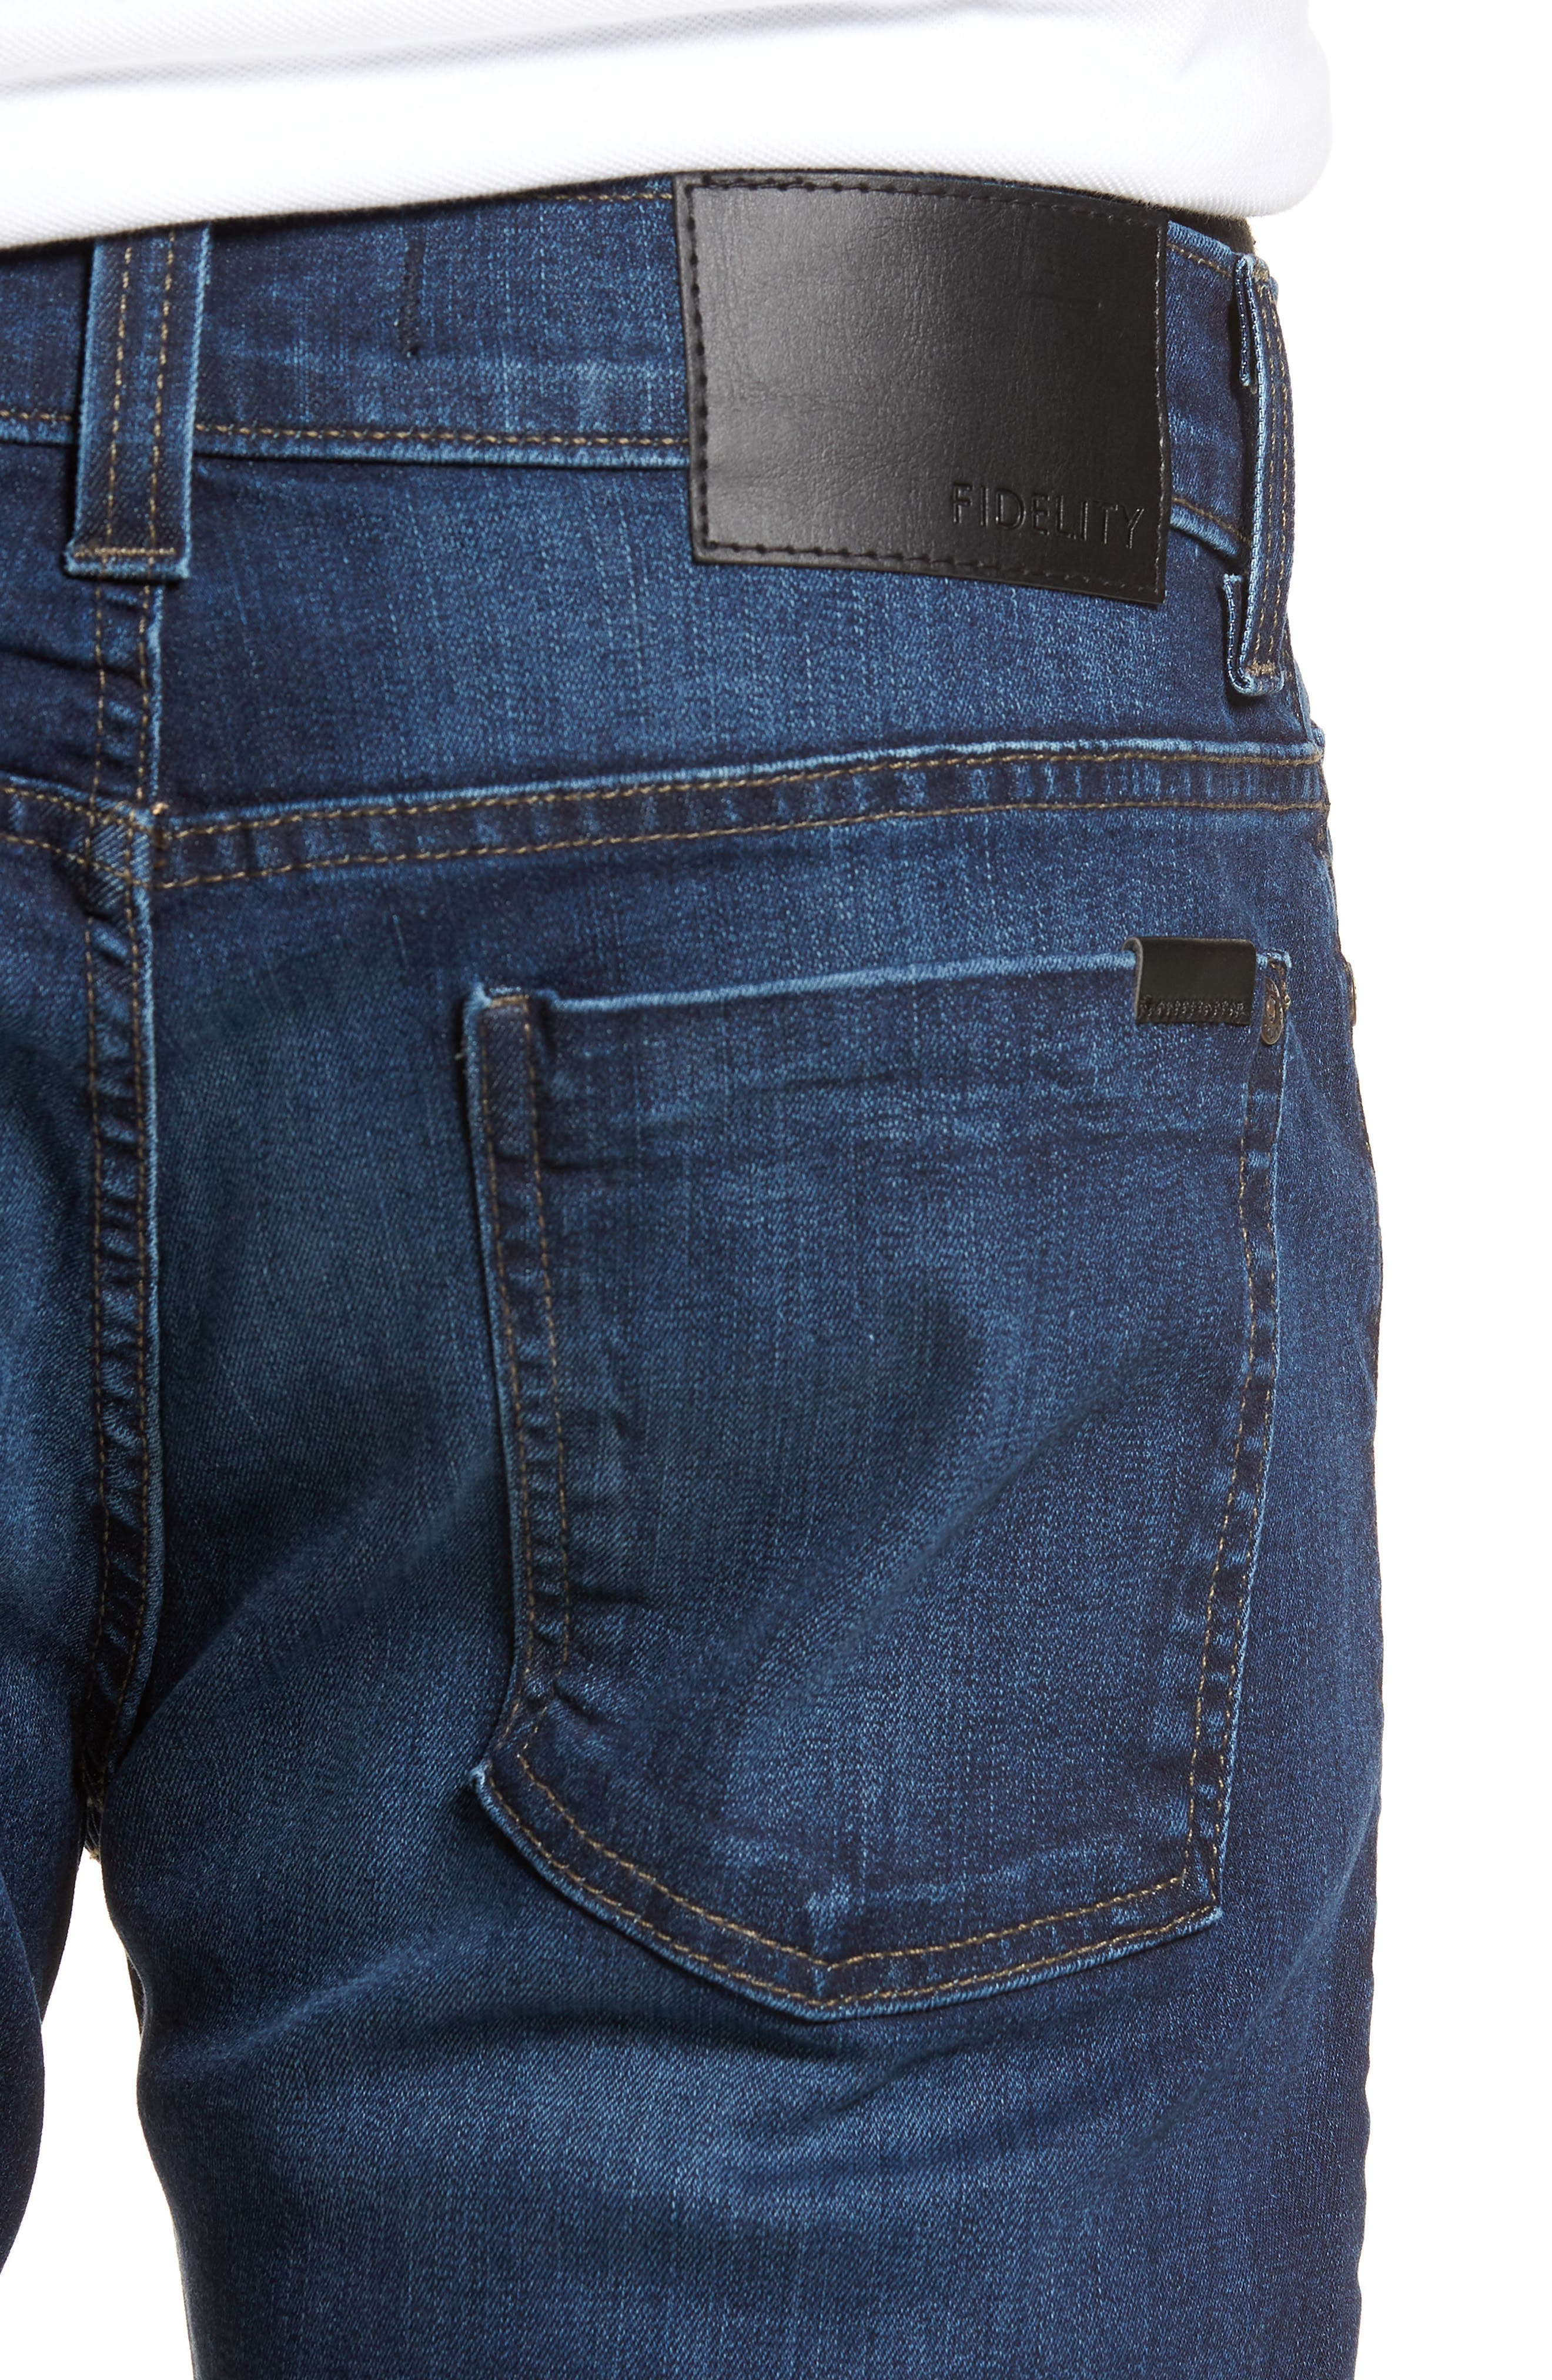 50-11 Relaxed Fit Jeans,                             Alternate thumbnail 4, color,                             Cornell Blue